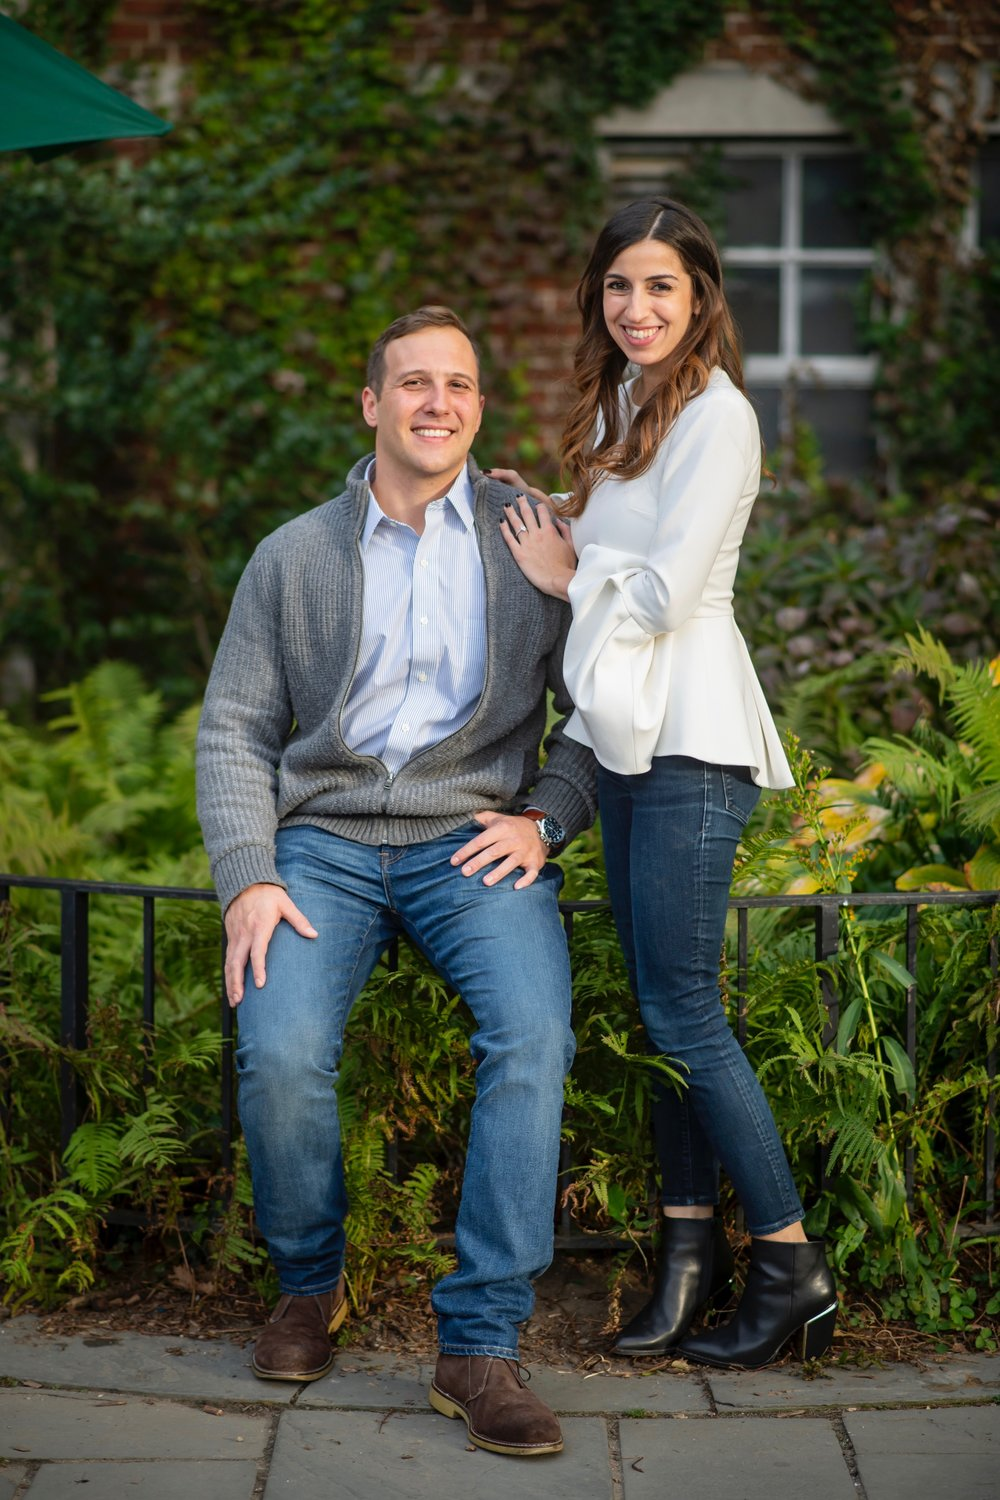 Courtney & Nick engagement session by Unveiled-Weddings.com